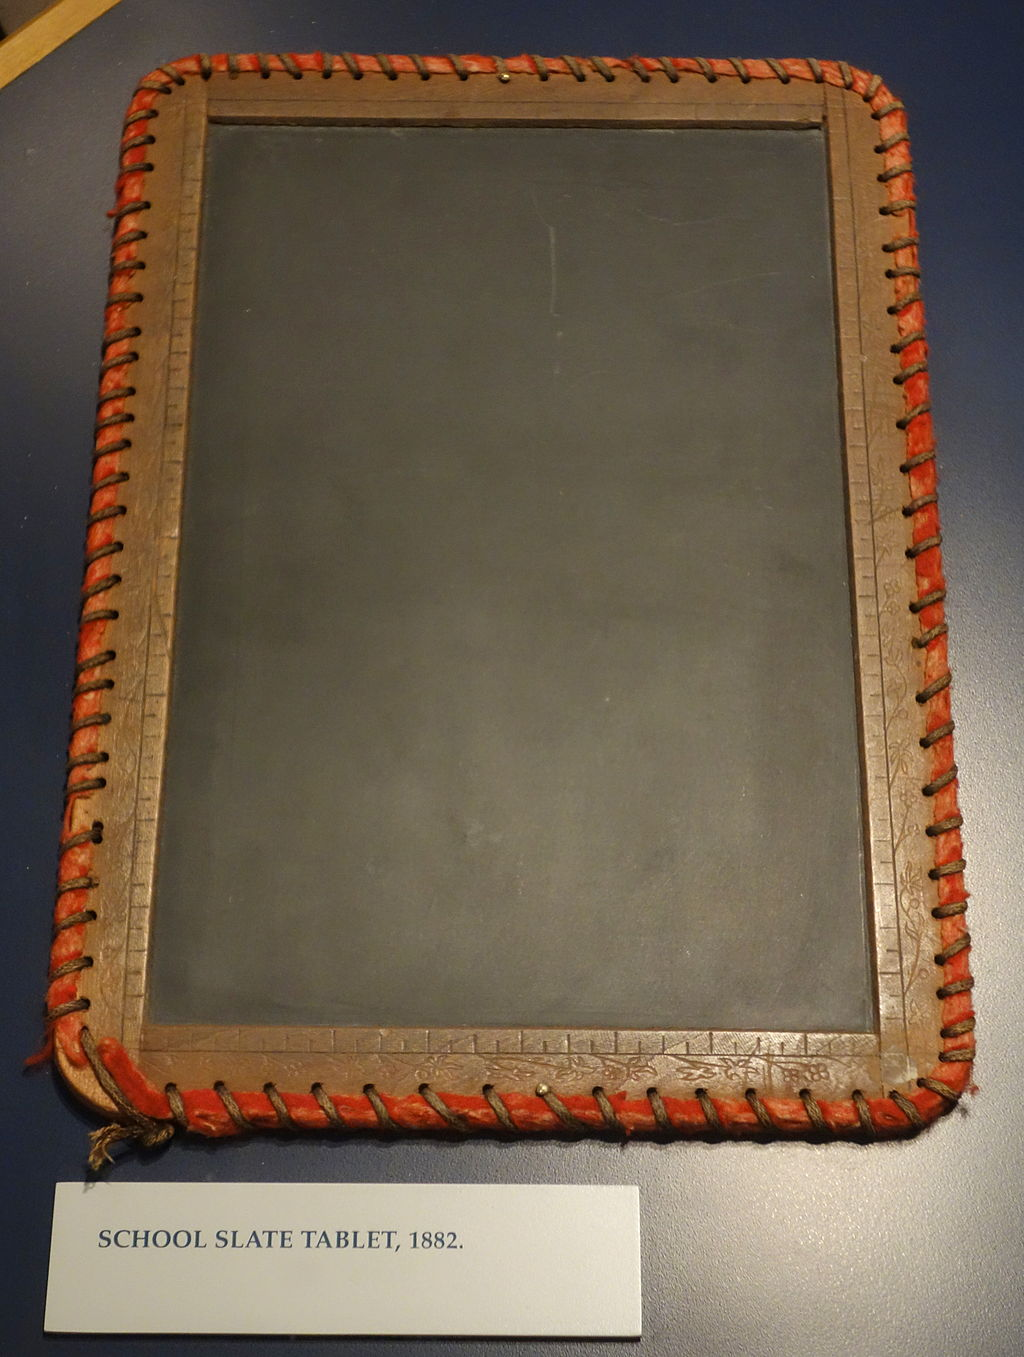 image of a slate tablet with bound edges